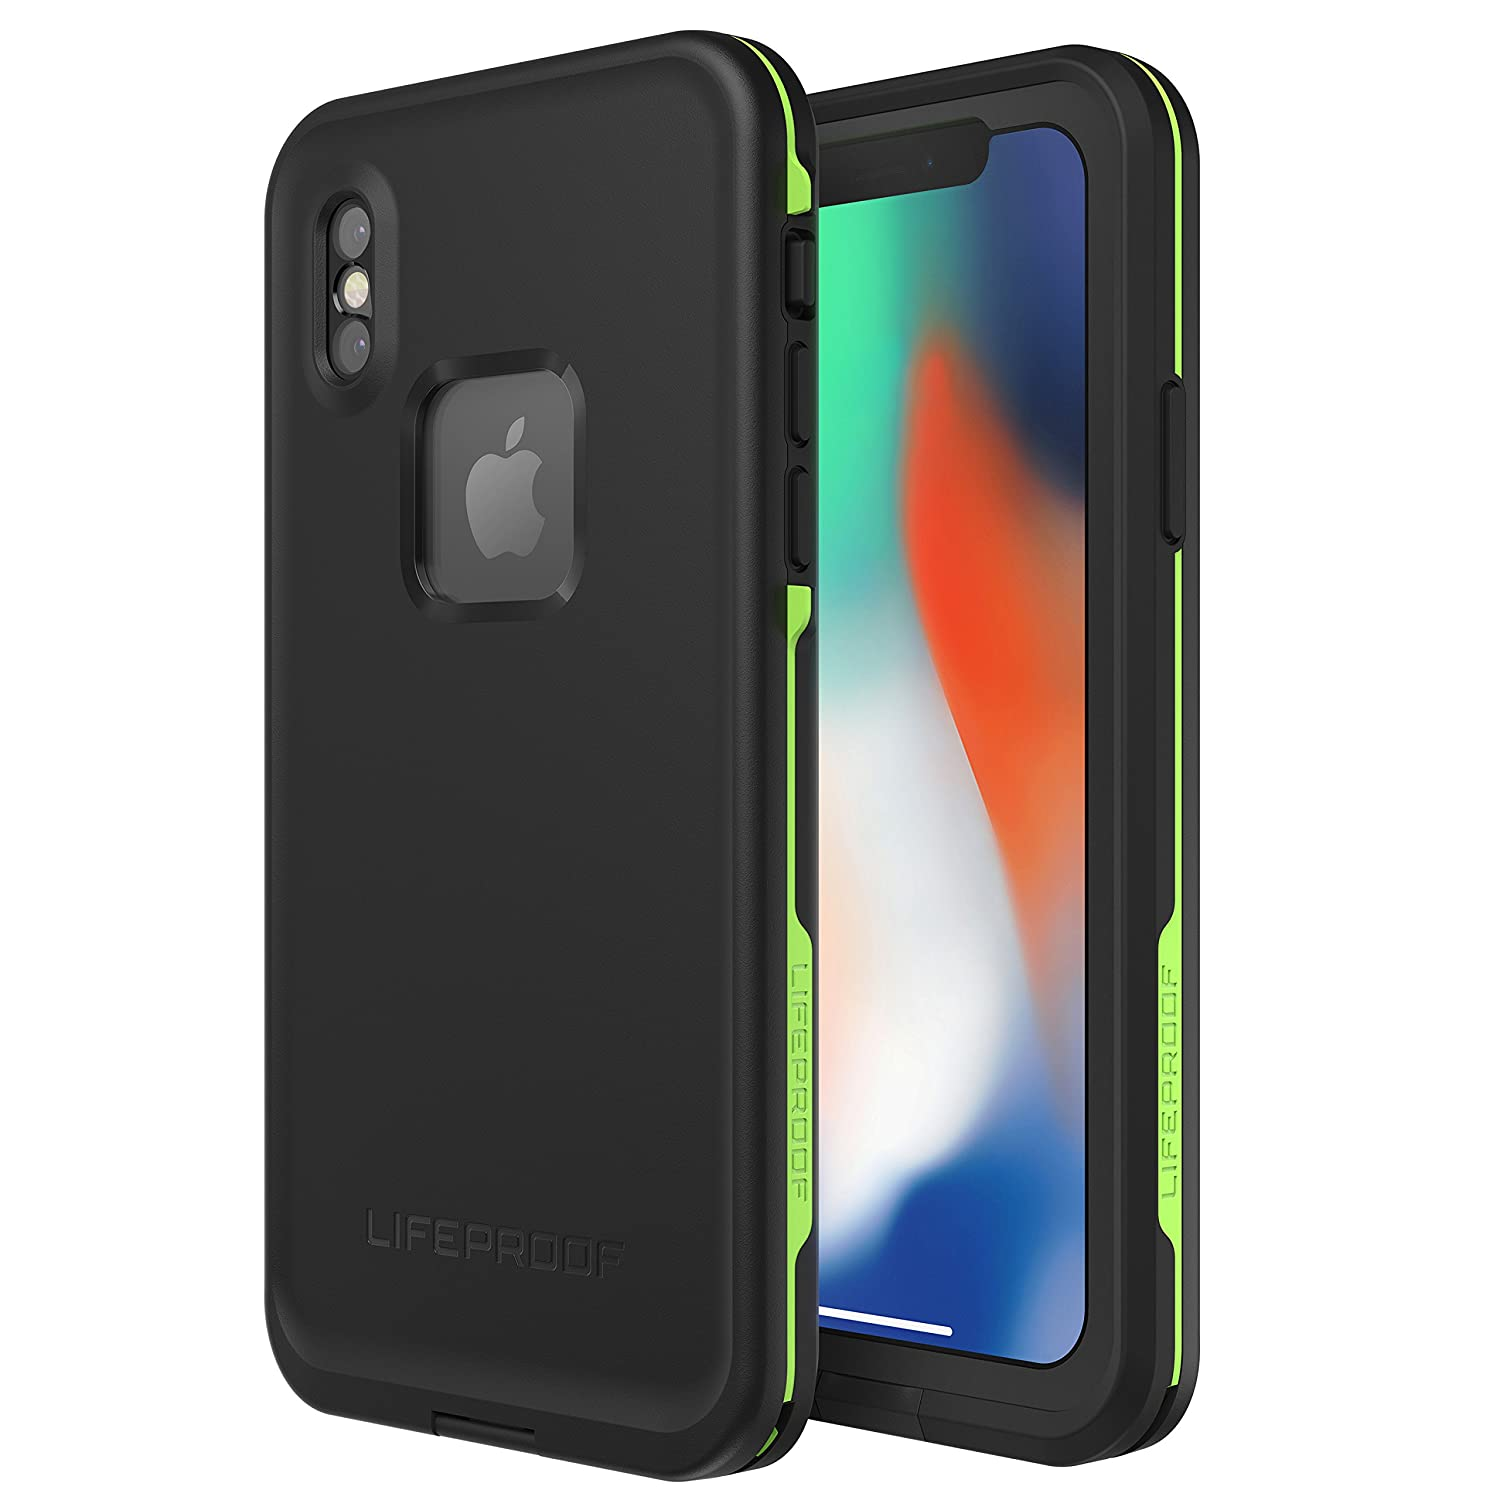 e51845c3c44 Lifeproof FRĒ SERIES Protector a prueba de agua para iPhone X (solamente) - Empaque  Retail - DROP IN (verde / gris): Amazon.com.mx: Electrónicos